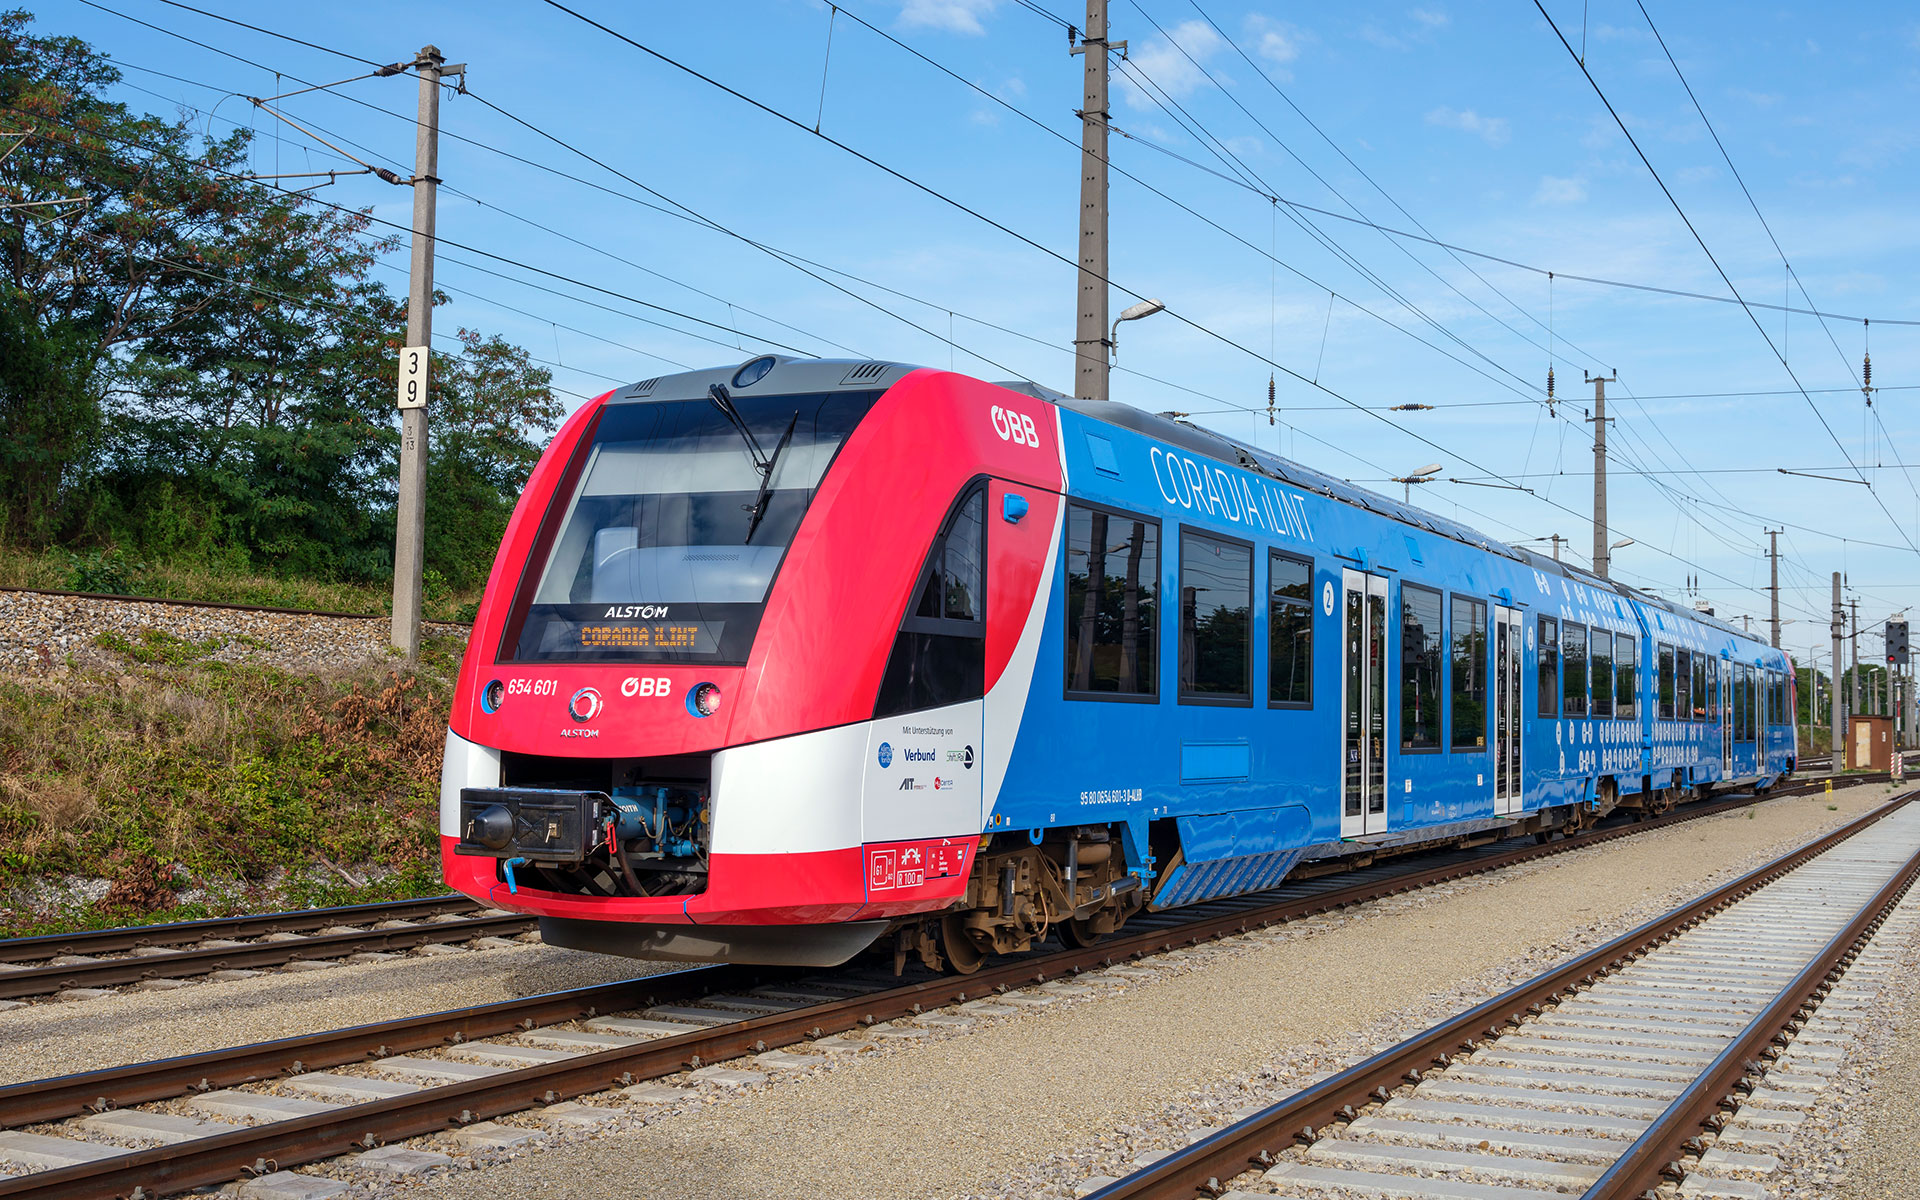 A Coradia iLint train on a commercial test run in Austria on 21 September 2020 (photo © ALSTOM / Christoph Busse).